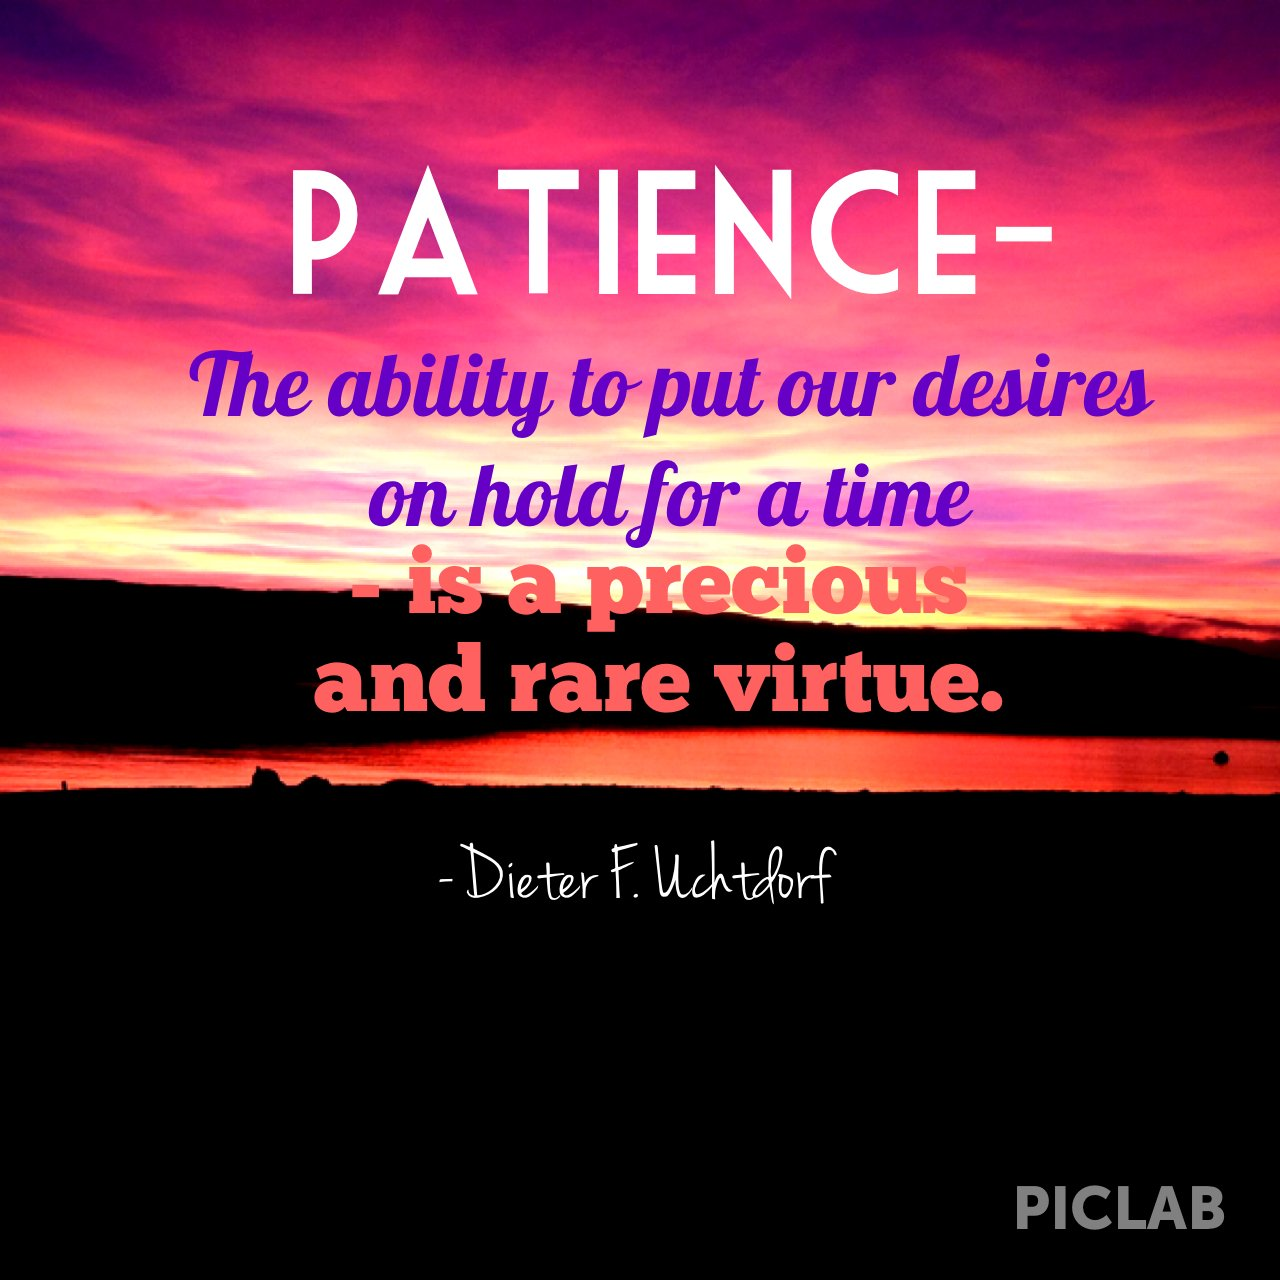 Persistence Motivational Quotes: Lds Patience Quotes. QuotesGram